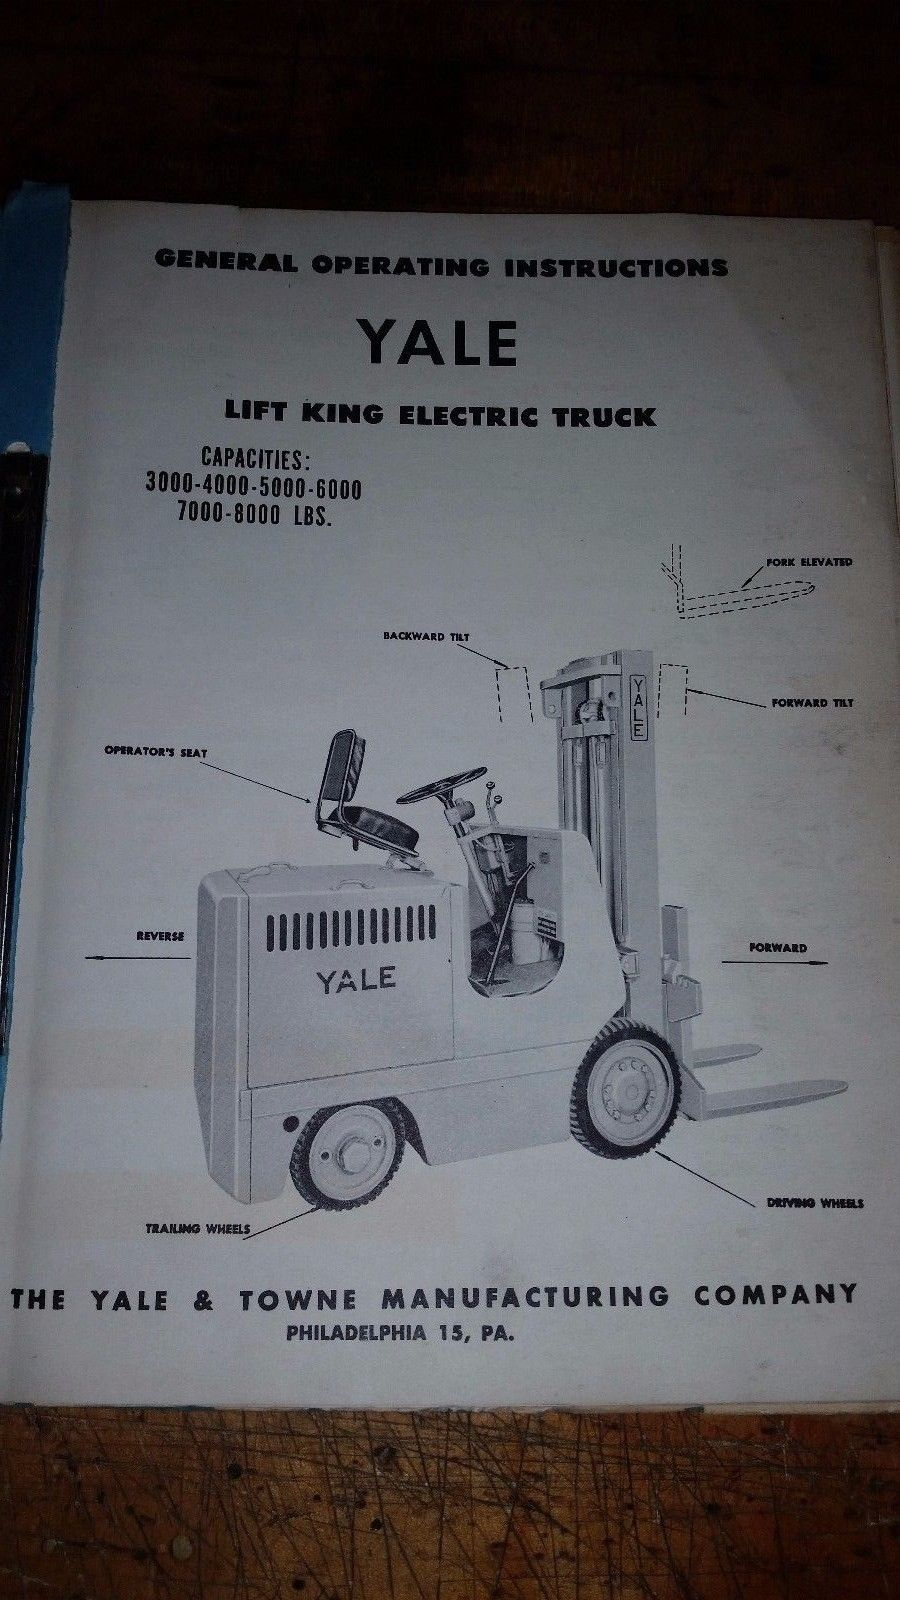 YALE Industrial Power Truck Forklift instructions and spare parts k51at-20